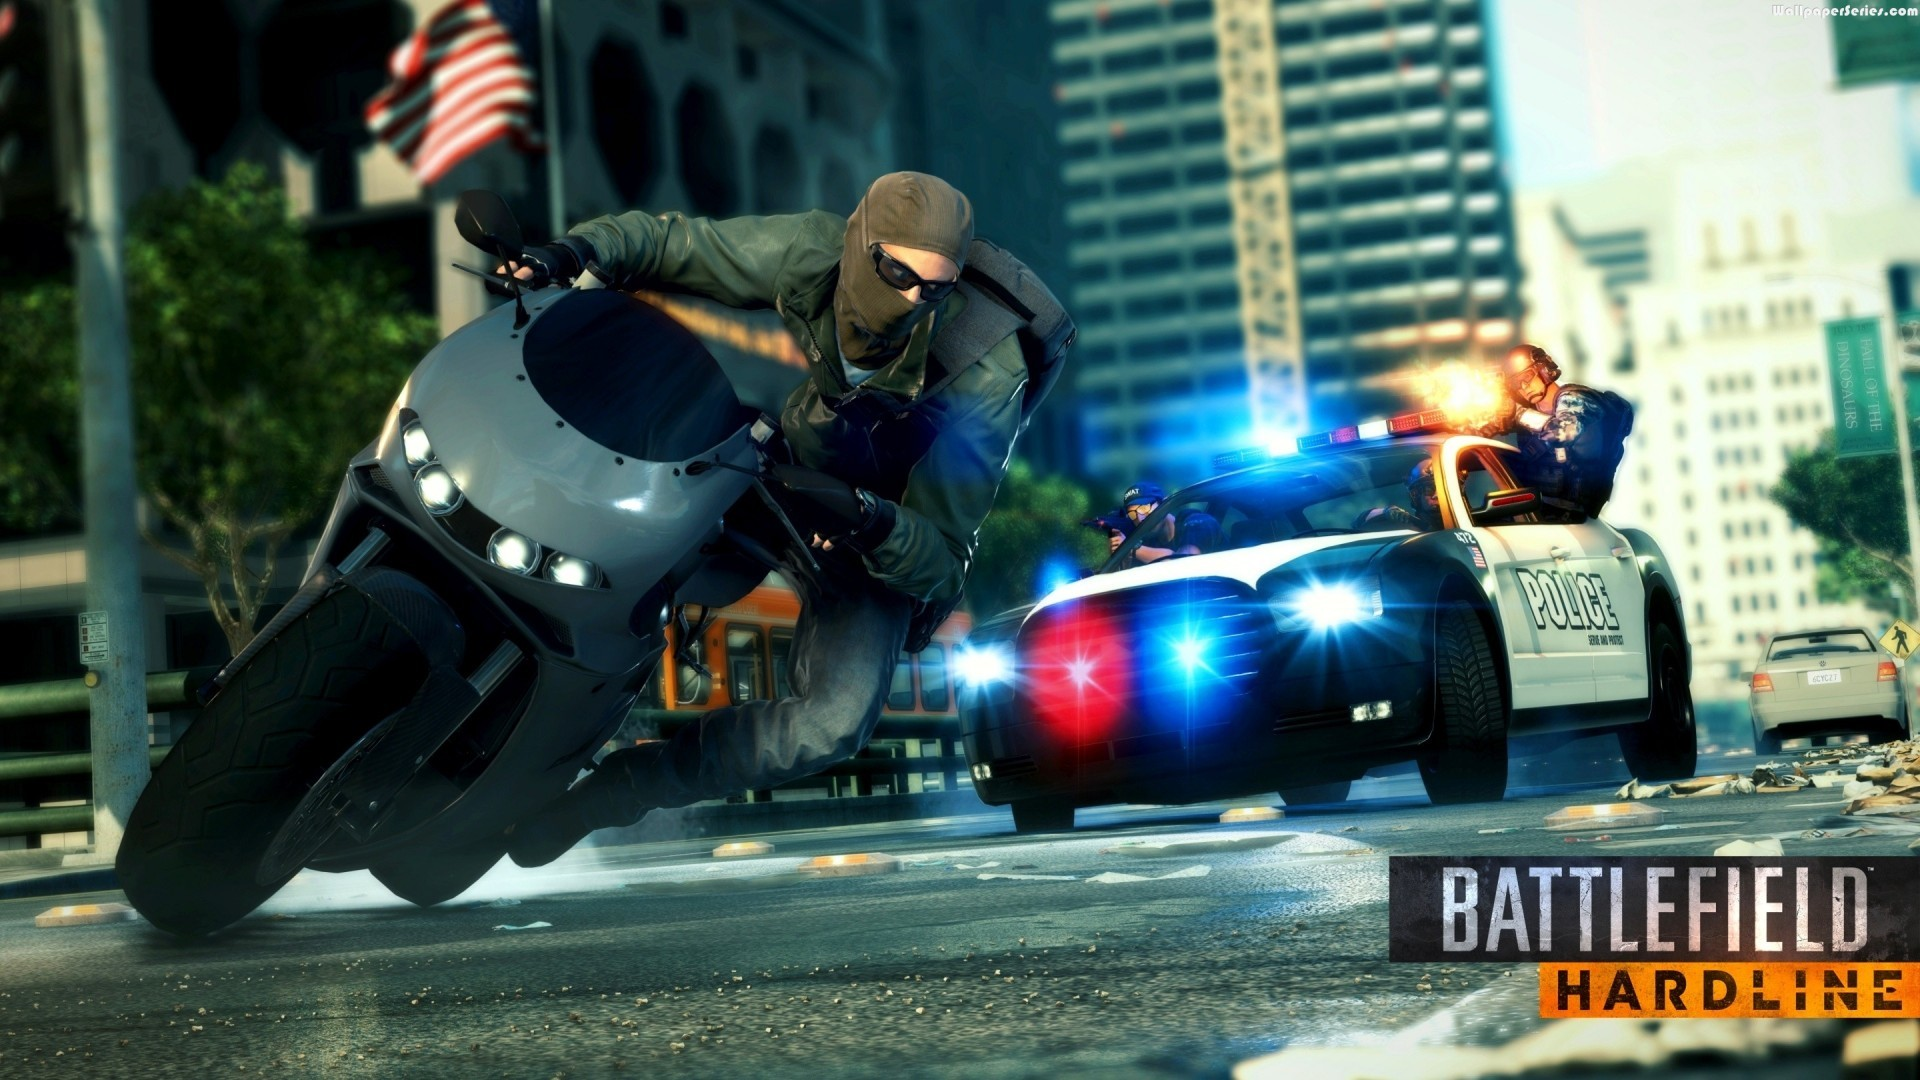 Res: 1920x1080, HardLine Game Police Car HD Wallpaper Stylish HD Wallpapers